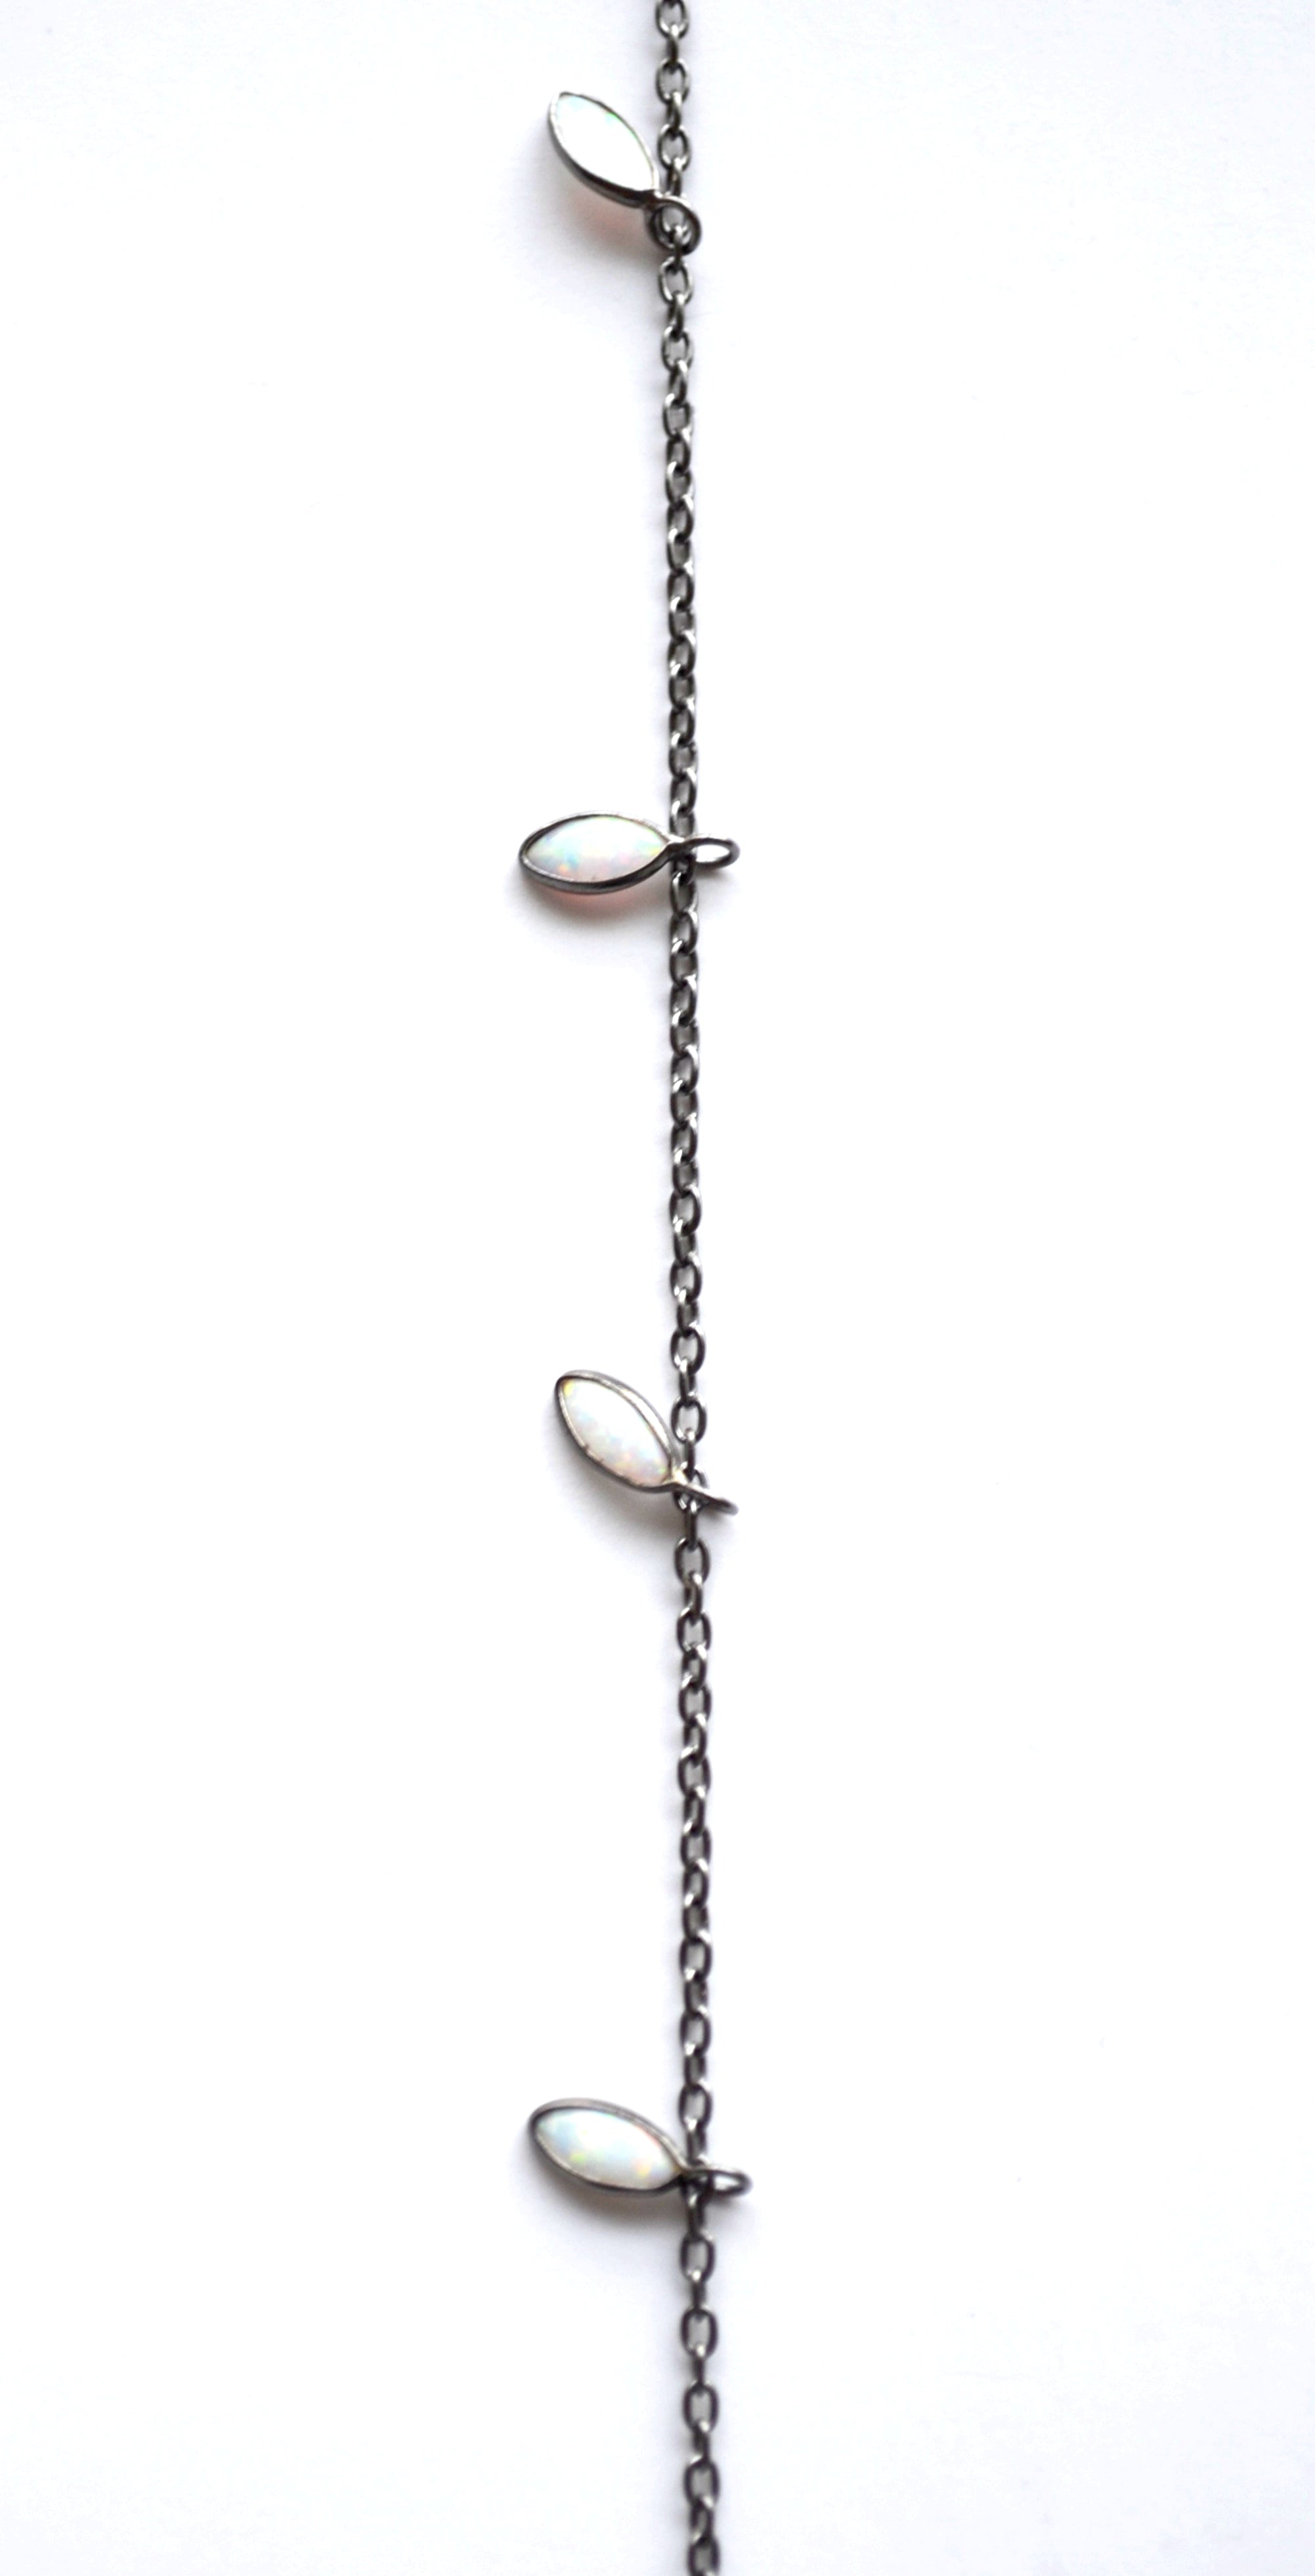 Single Strand Opal Marquise Necklace in Oxidized Sterling Silver